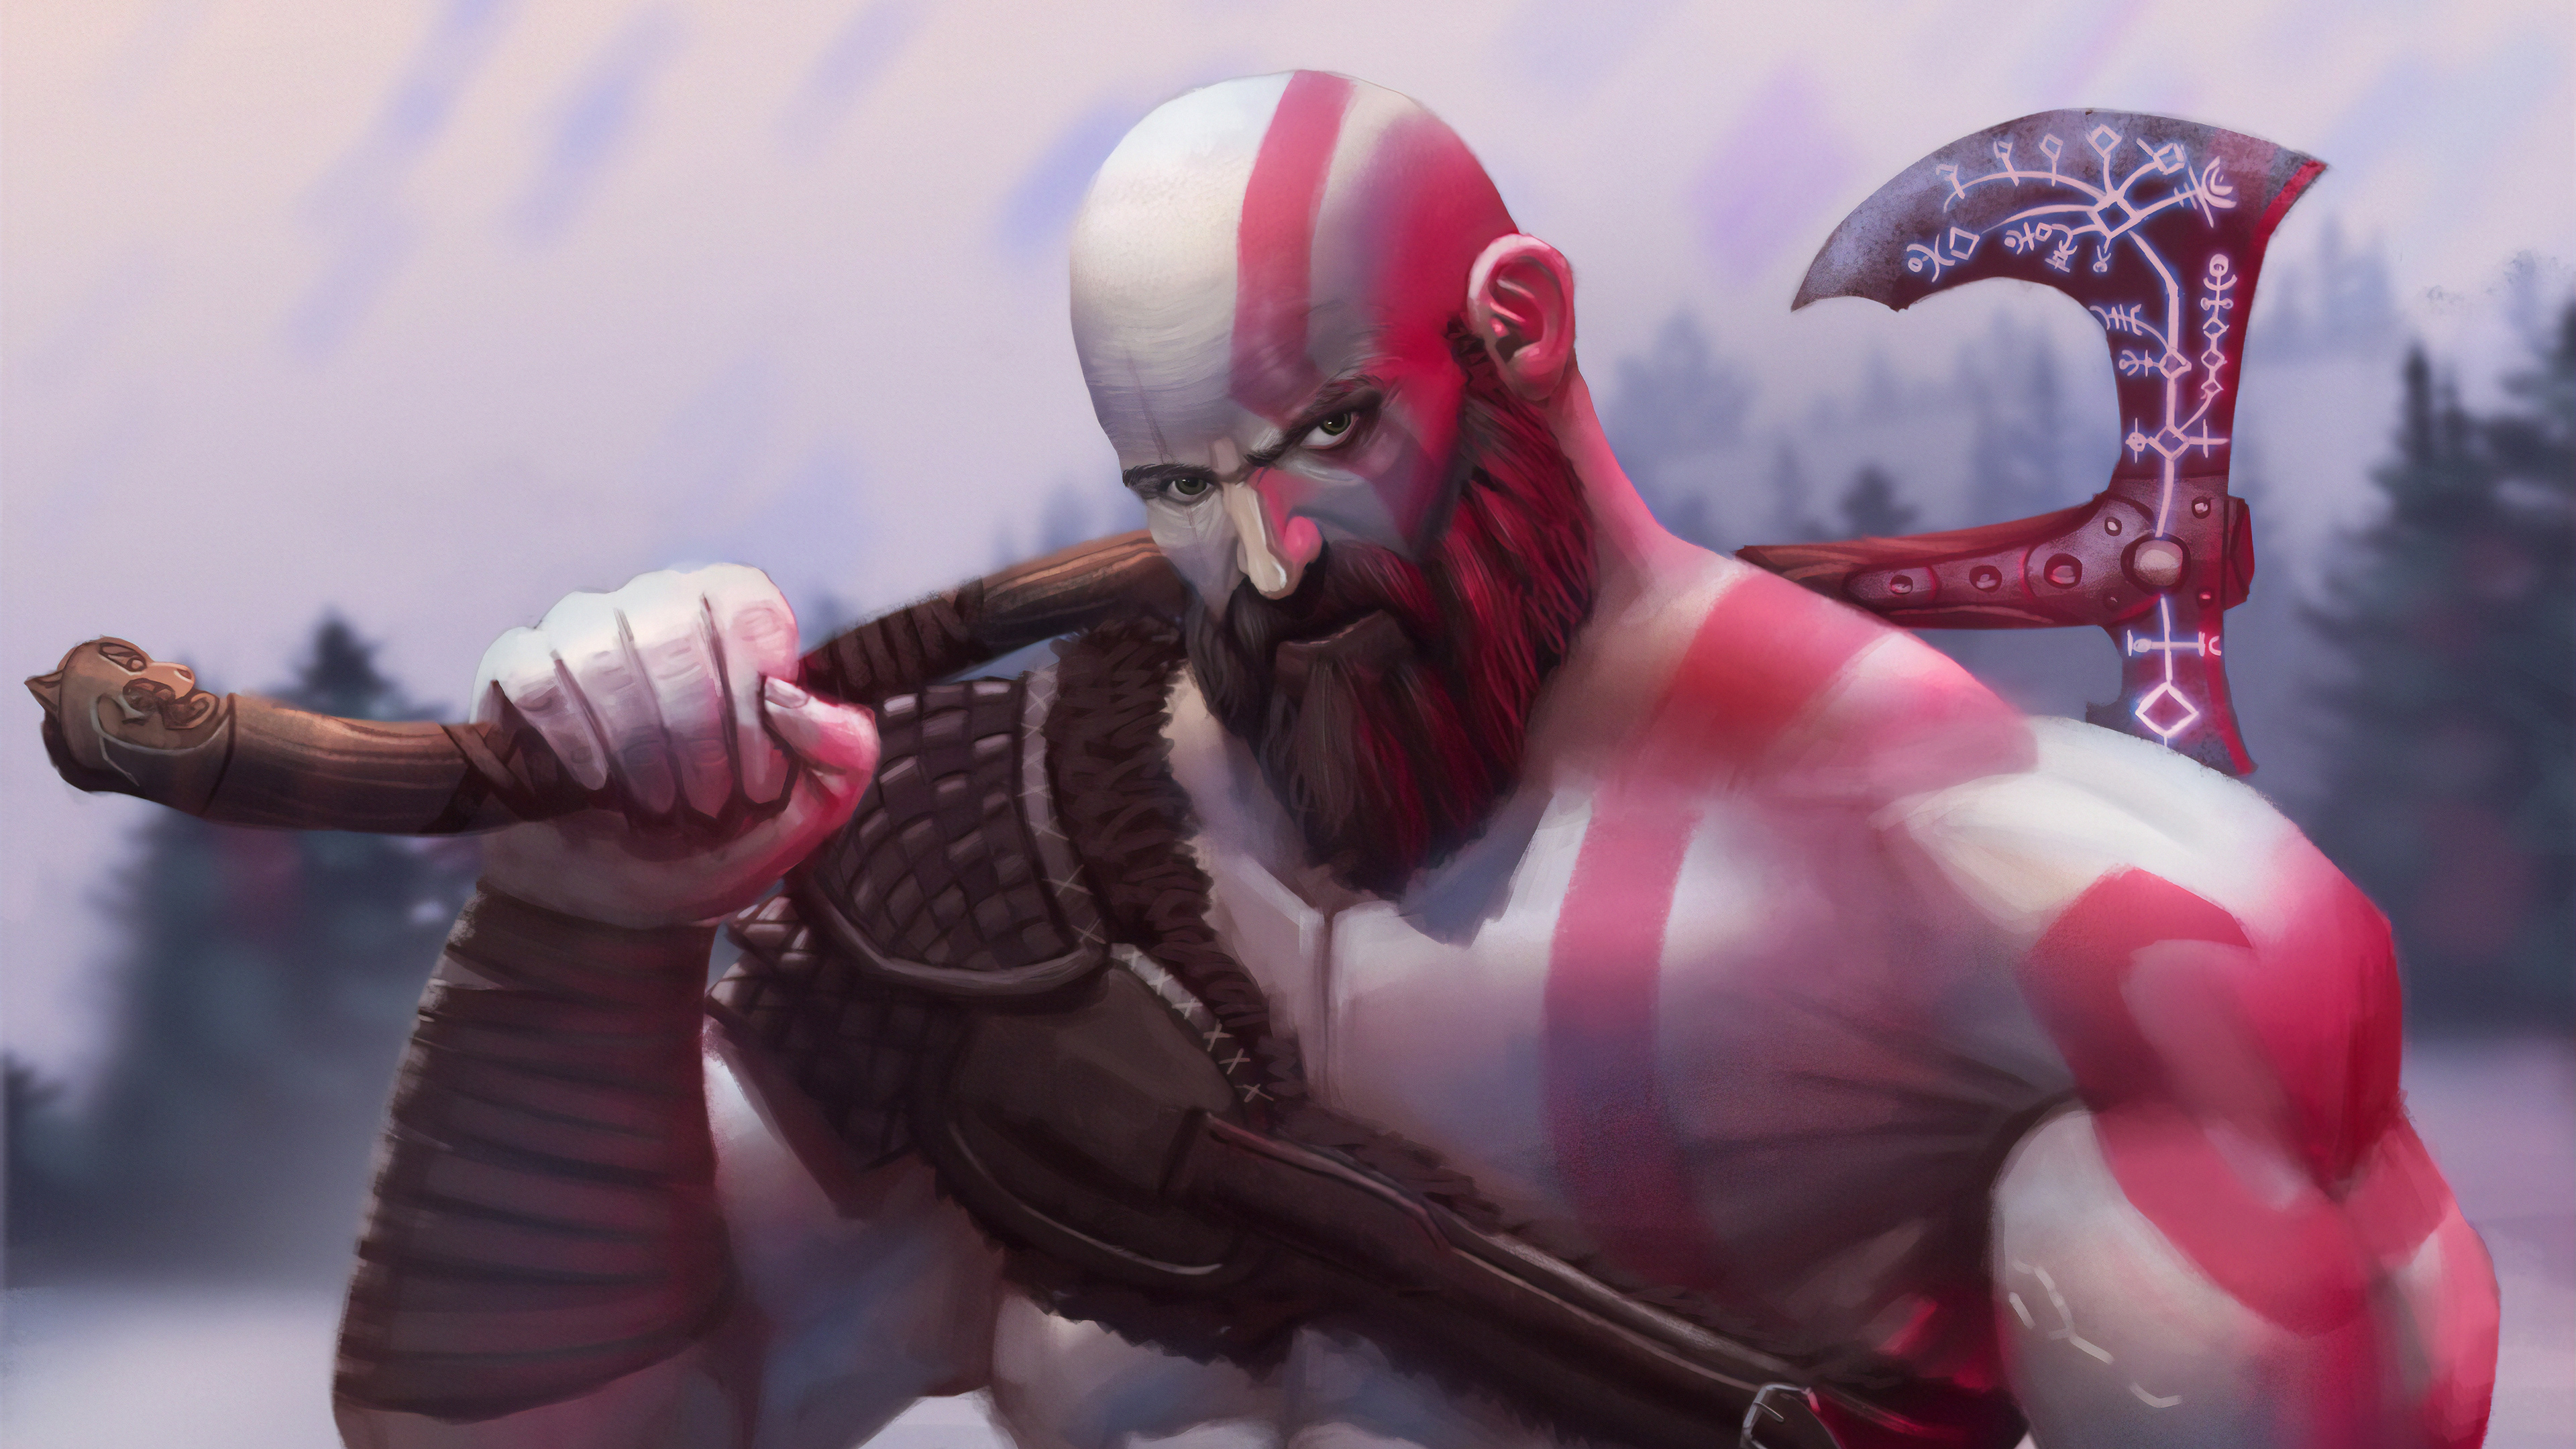 kratos hammer 1572370679 - Kratos Hammer - kratos wallpapers, hd-wallpapers, games wallpapers, artwork wallpapers, artstation wallpapers, 4k-wallpapers